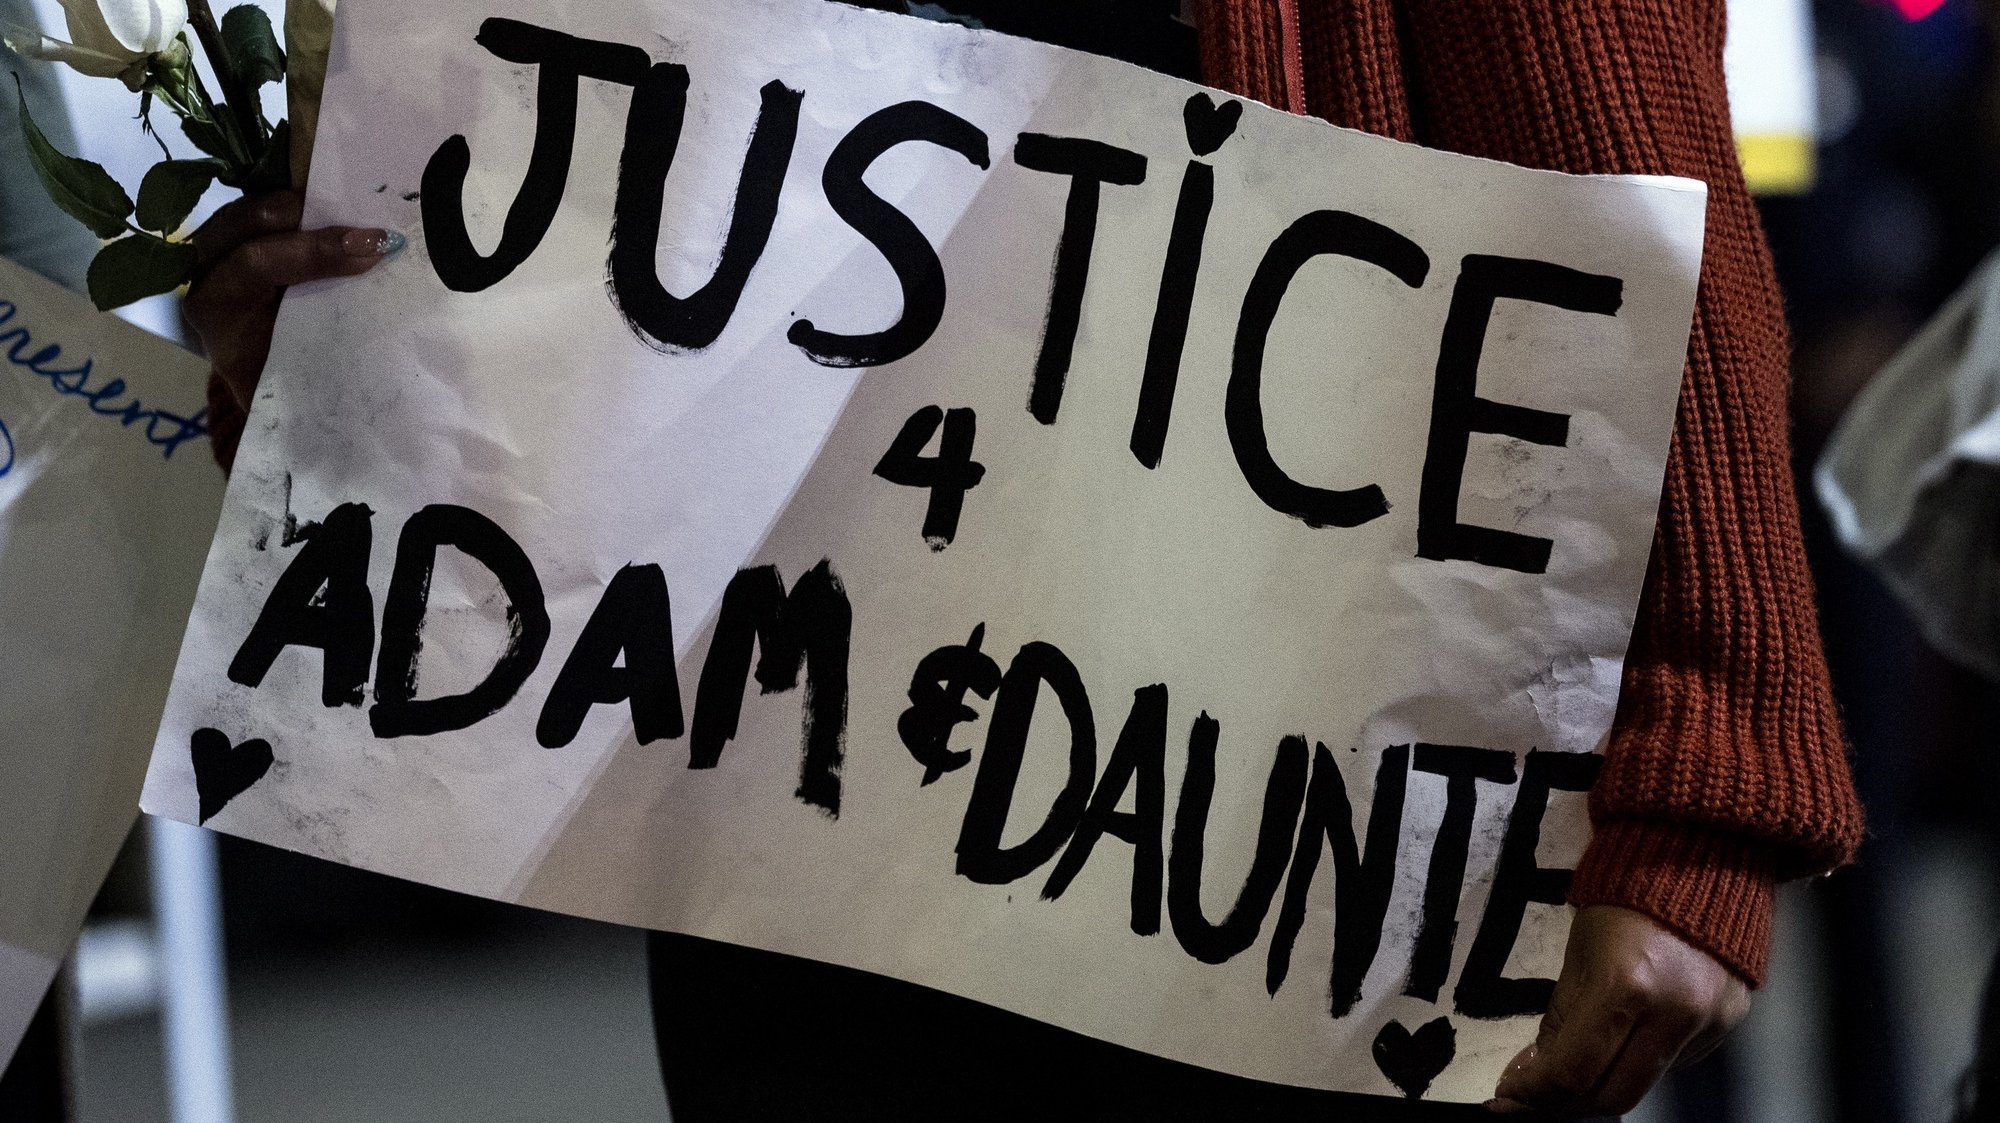 epa09144487 A demonstrator holds a poster reading 'Justice for Adam and Daunte' during a candlelight vigil and rally for Daunte Wright and Adam Toledo at Leimert Park Plaza, in Los Angeles, California, USA, 18 April 2021. 20 year old Daunte Demetrius Wright was fatally shot by police officer Kimberly Ann Potter in Brooklyn Center, Minnesota on April 11, 2021. On March 29, 2021, 13 year old Adam Toledo was shot and killed by police officer Eric Stillman in the Little Village neighborhood on the West Side of Chicago on March 29, 2021.  EPA/ETIENNE LAURENT